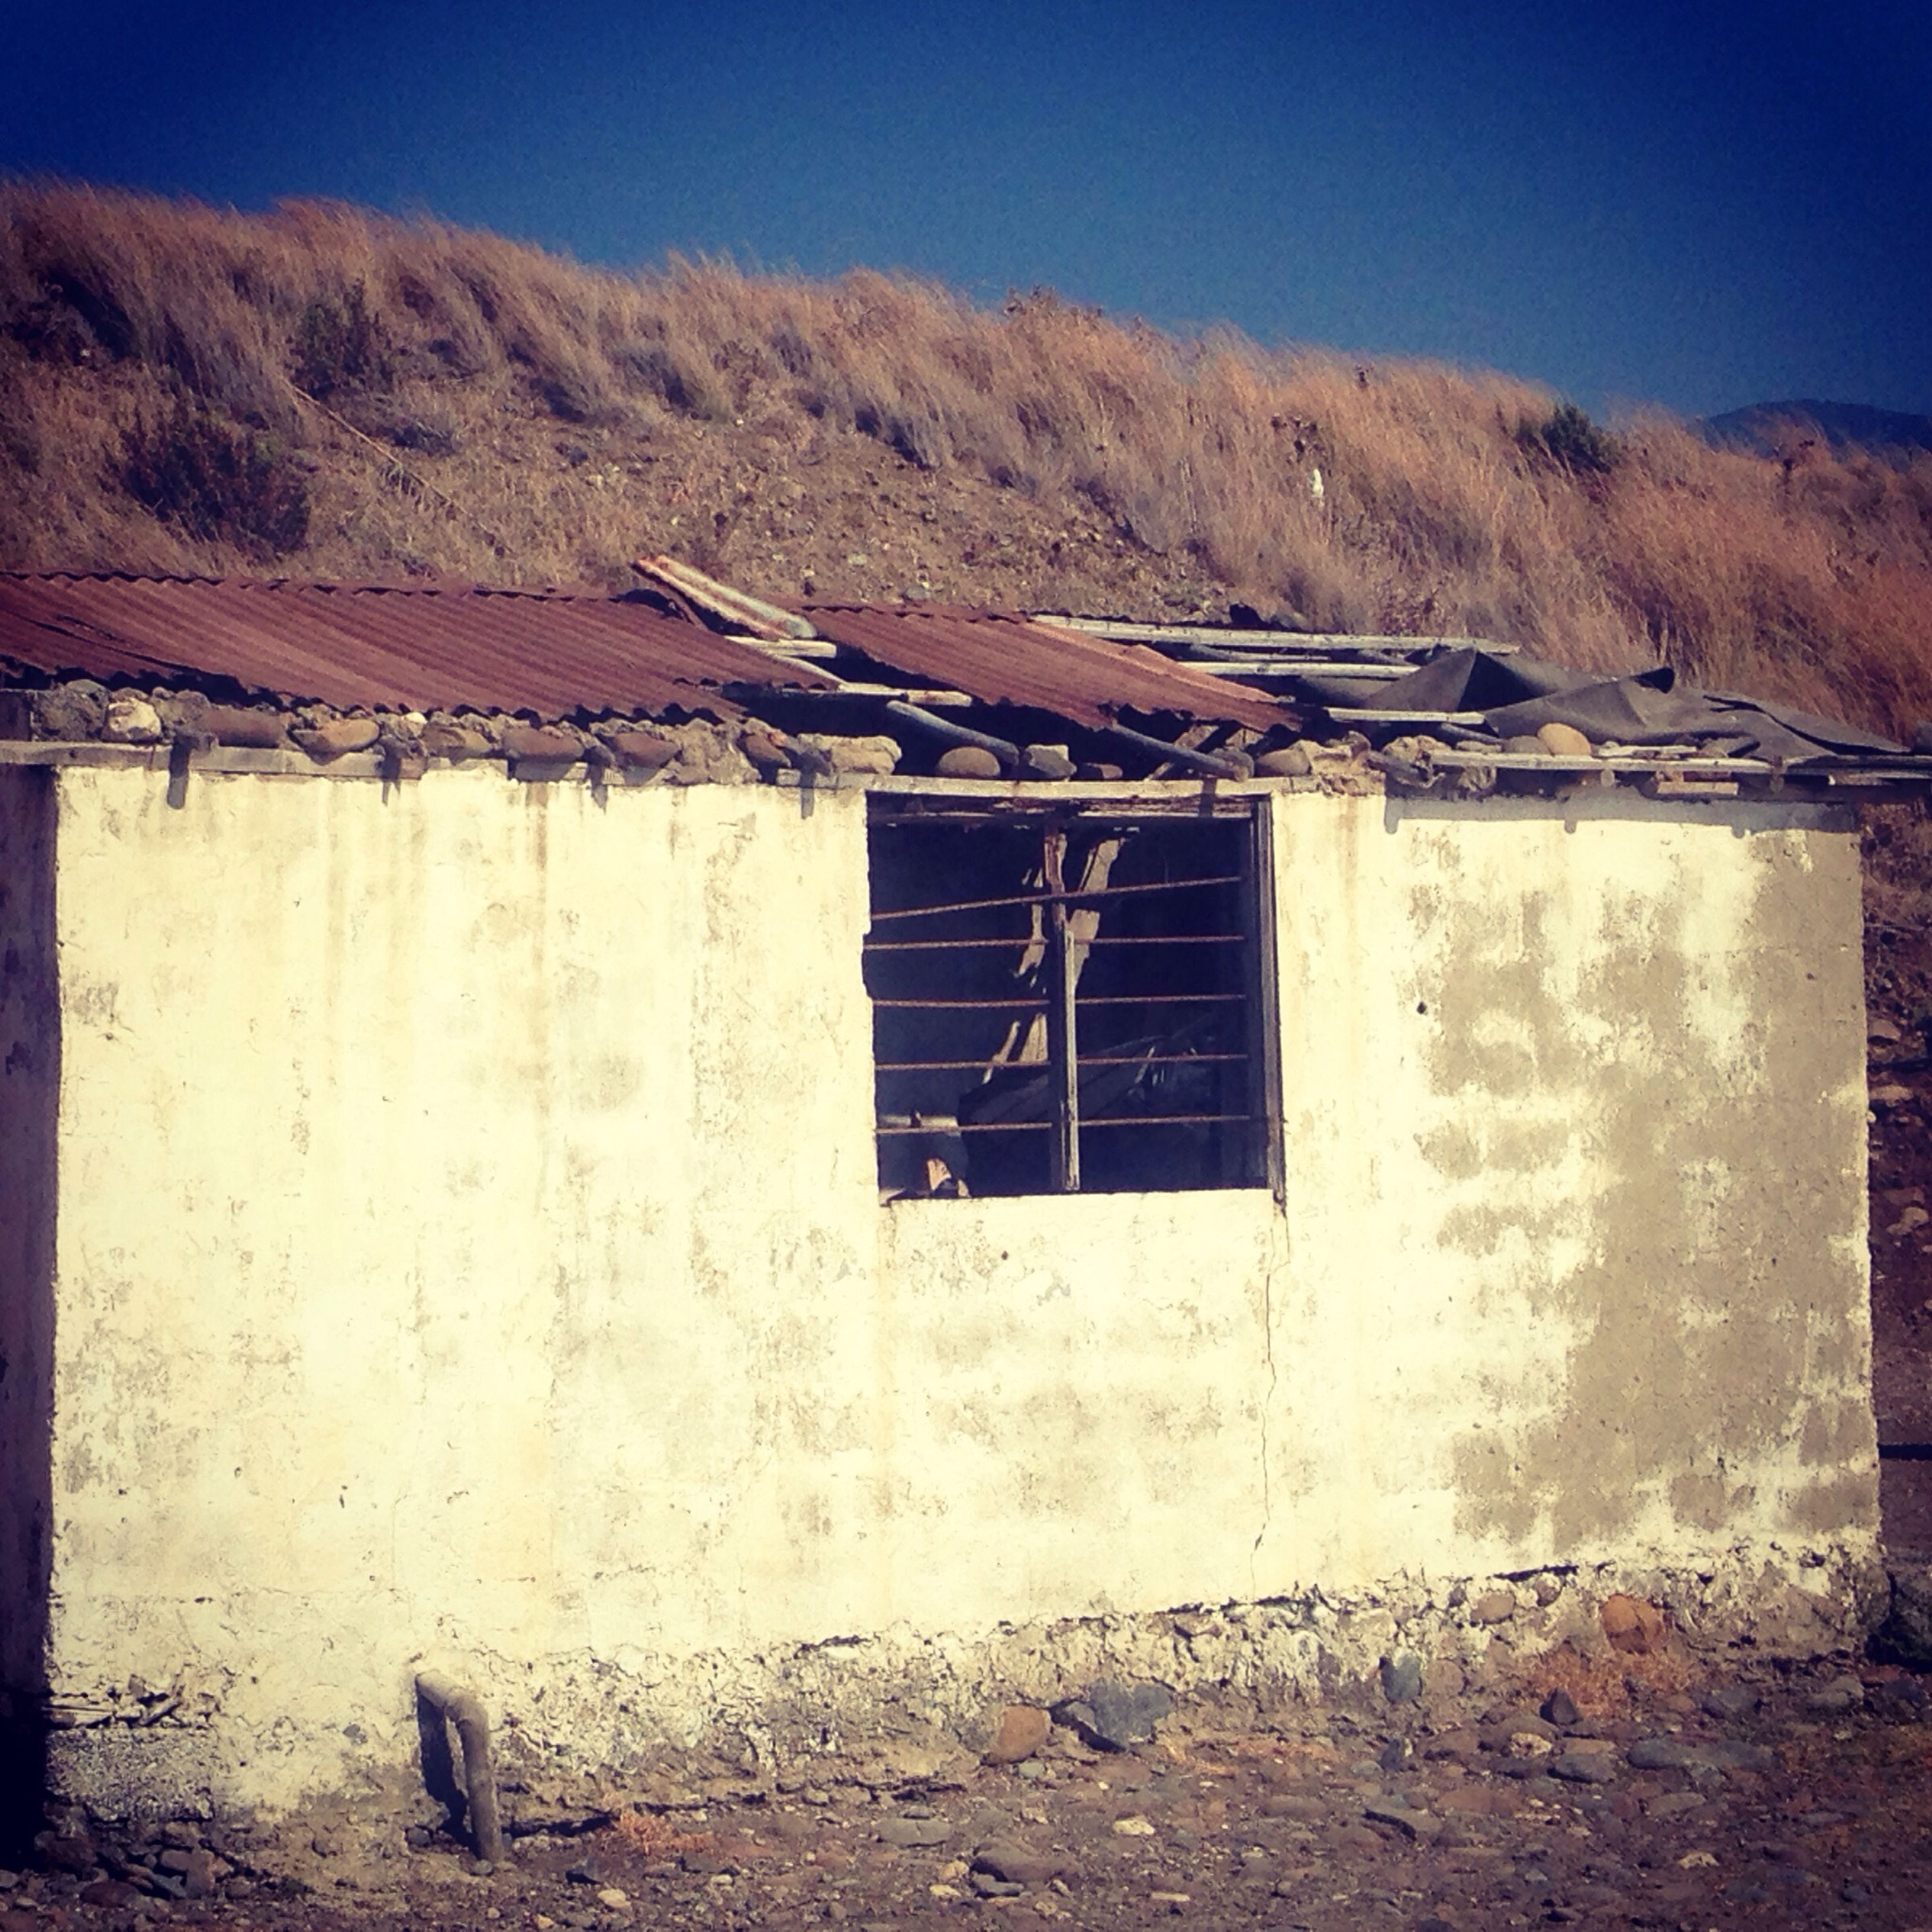 built structure, architecture, building exterior, house, window, clear sky, abandoned, old, obsolete, damaged, day, sky, no people, mountain, outdoors, sunlight, deterioration, residential structure, run-down, roof